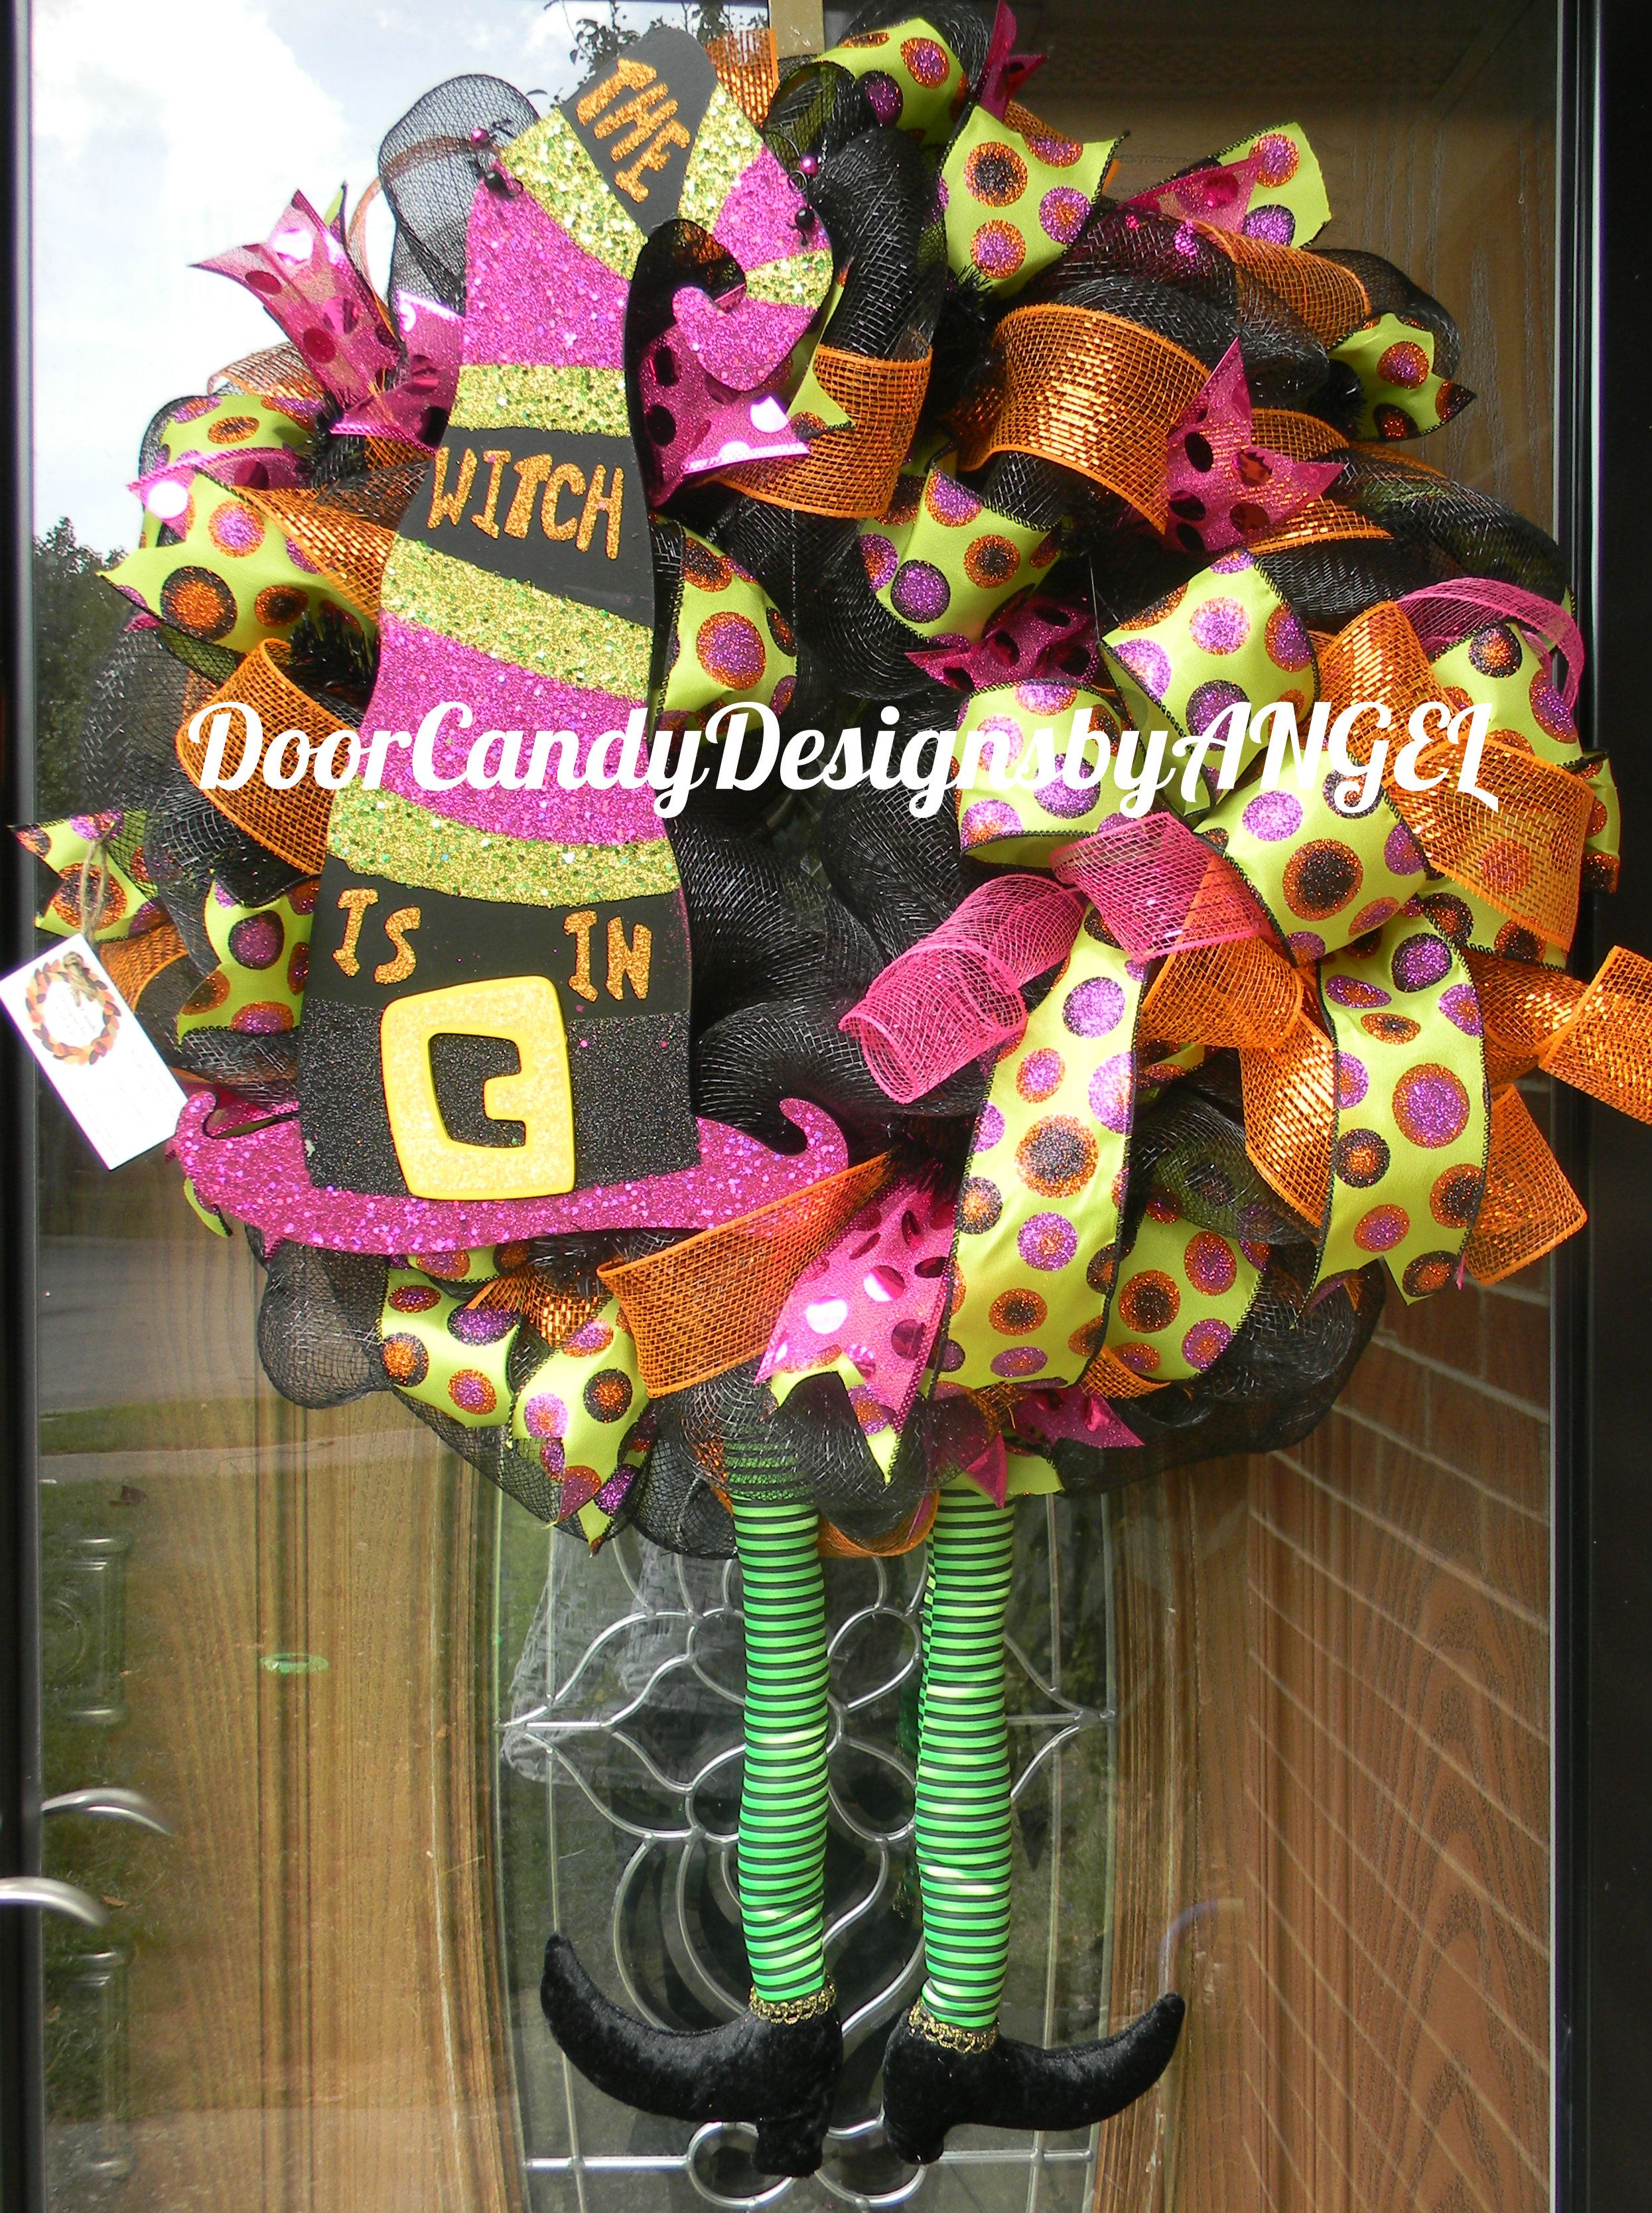 The Witch is In Deco mesh WReath Door Candy Designs by